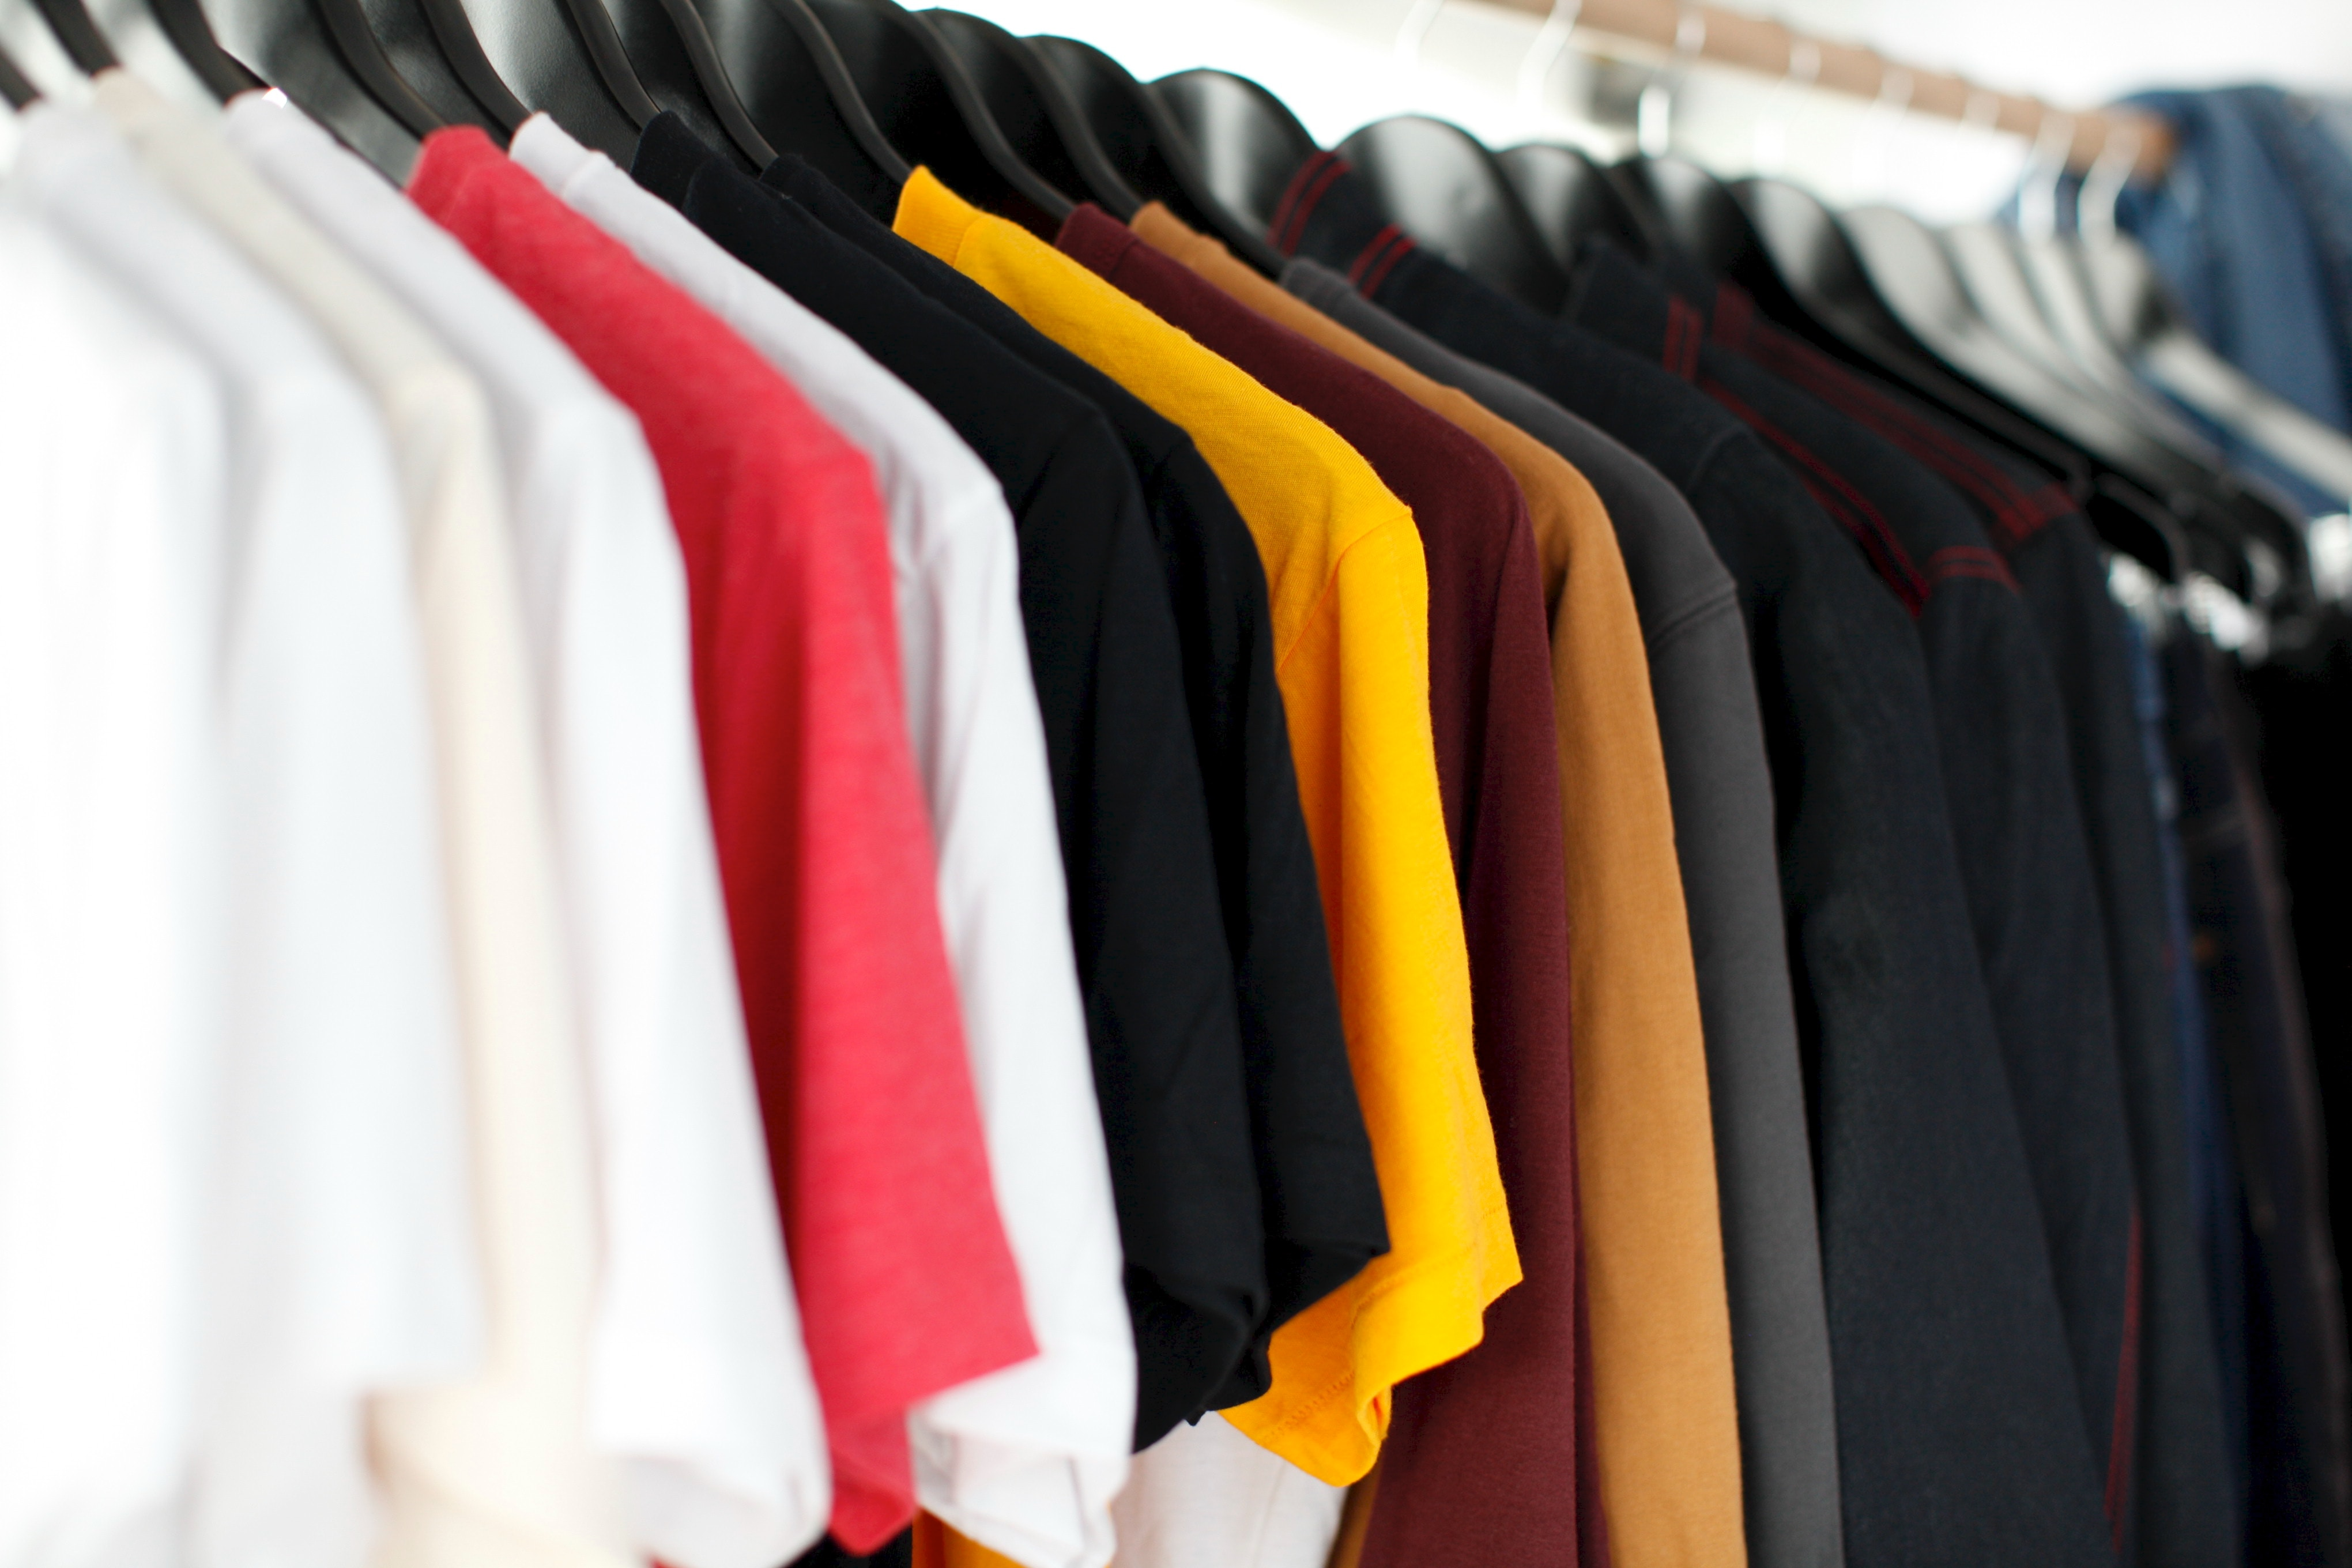 A row of various colour tshirts hanging on a clothes rail